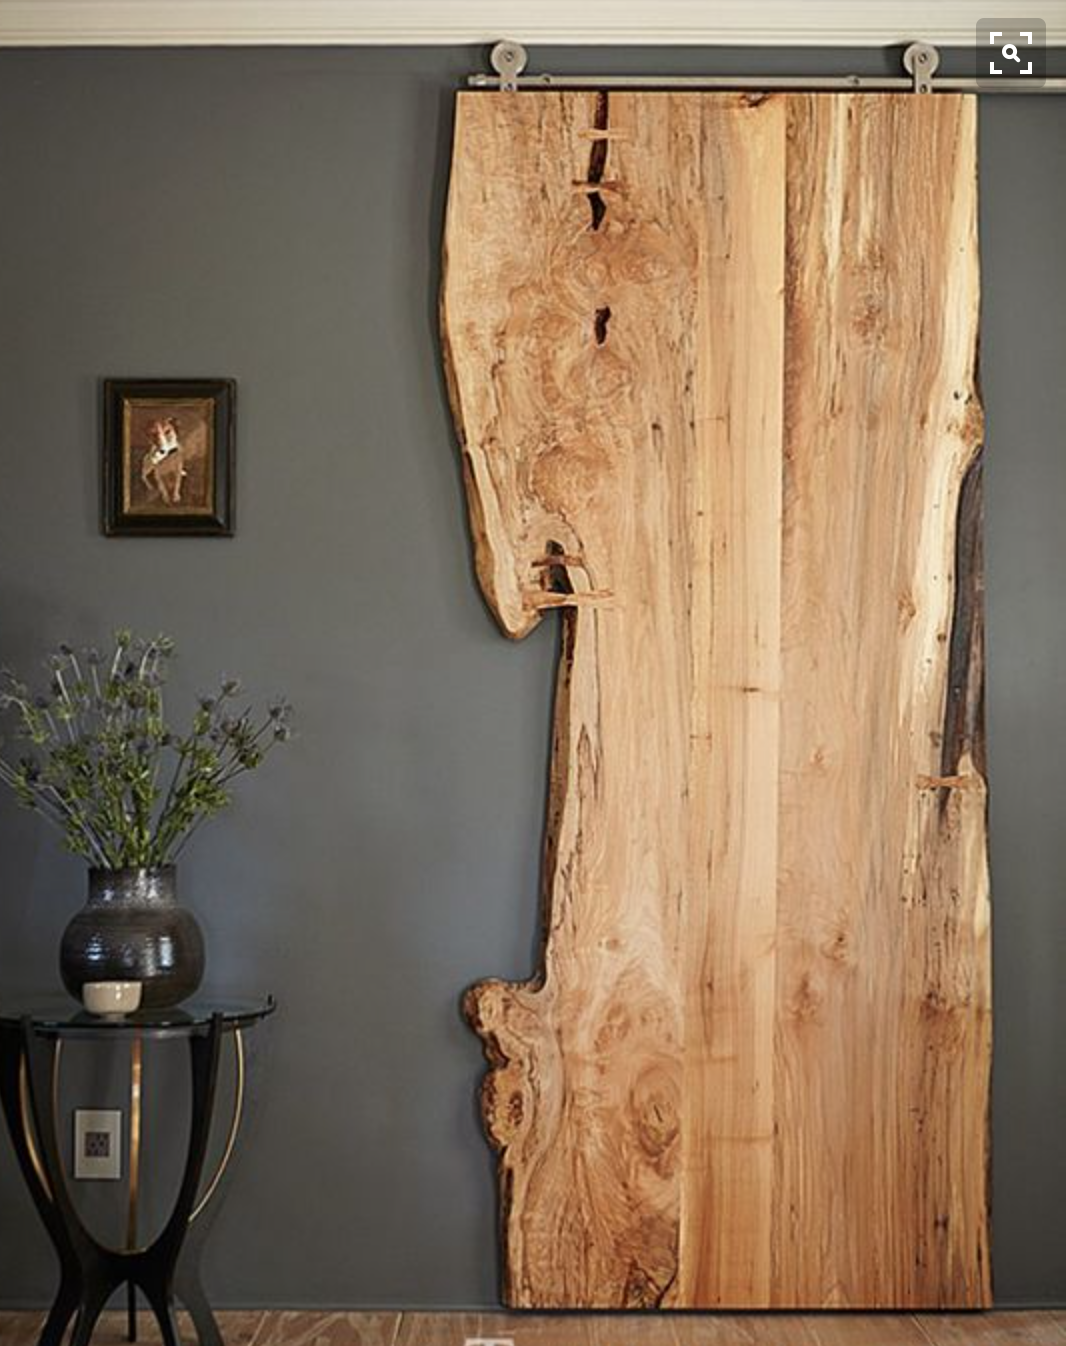 Perhaps a cool slab of wood installed on the wall in the powder room?  One from the site?